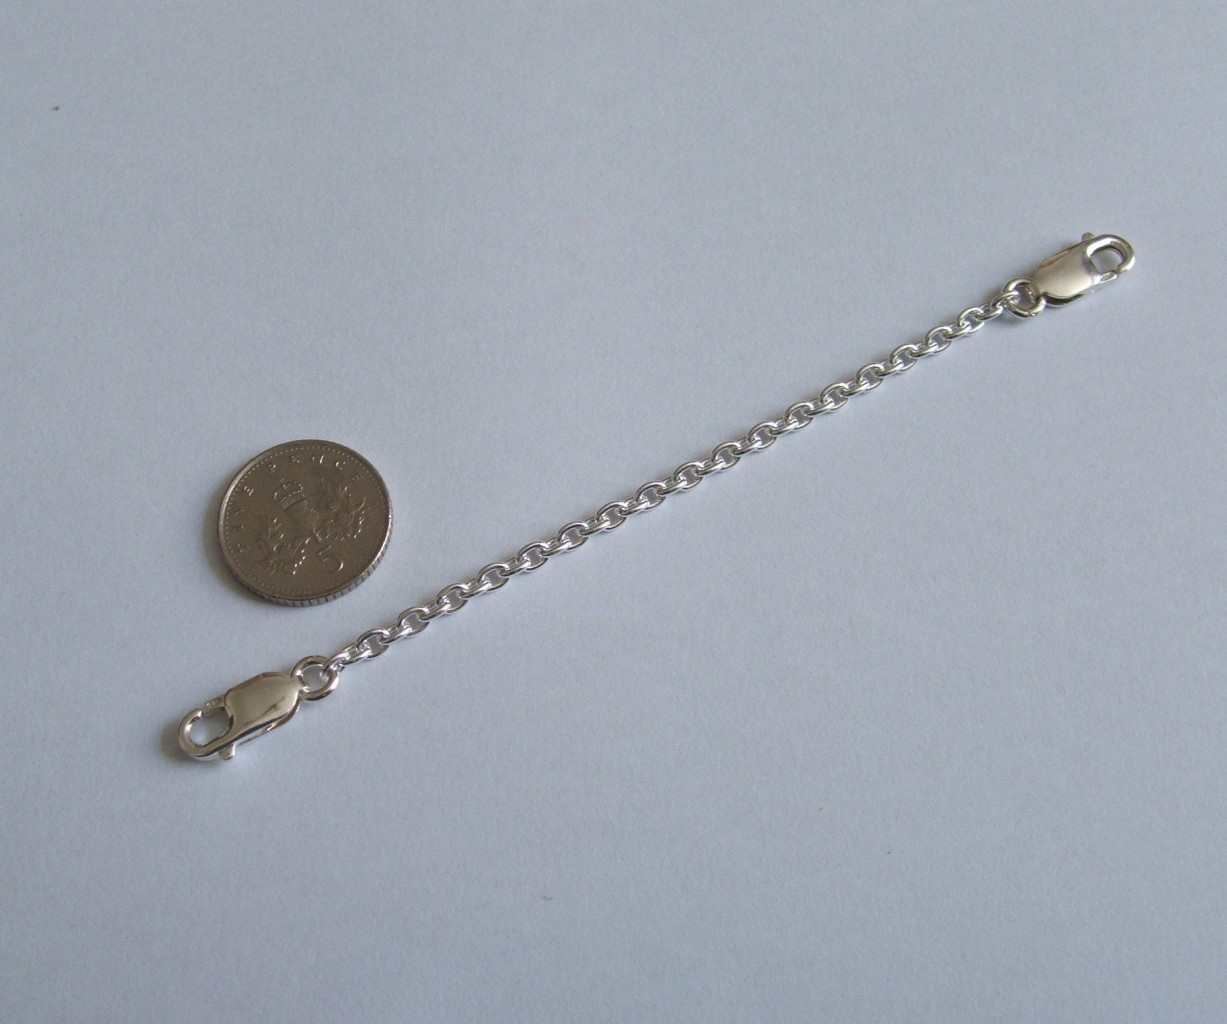 Heavy Sterling Silver necklace extender safety chain two Quality Lobster clasps | eBay